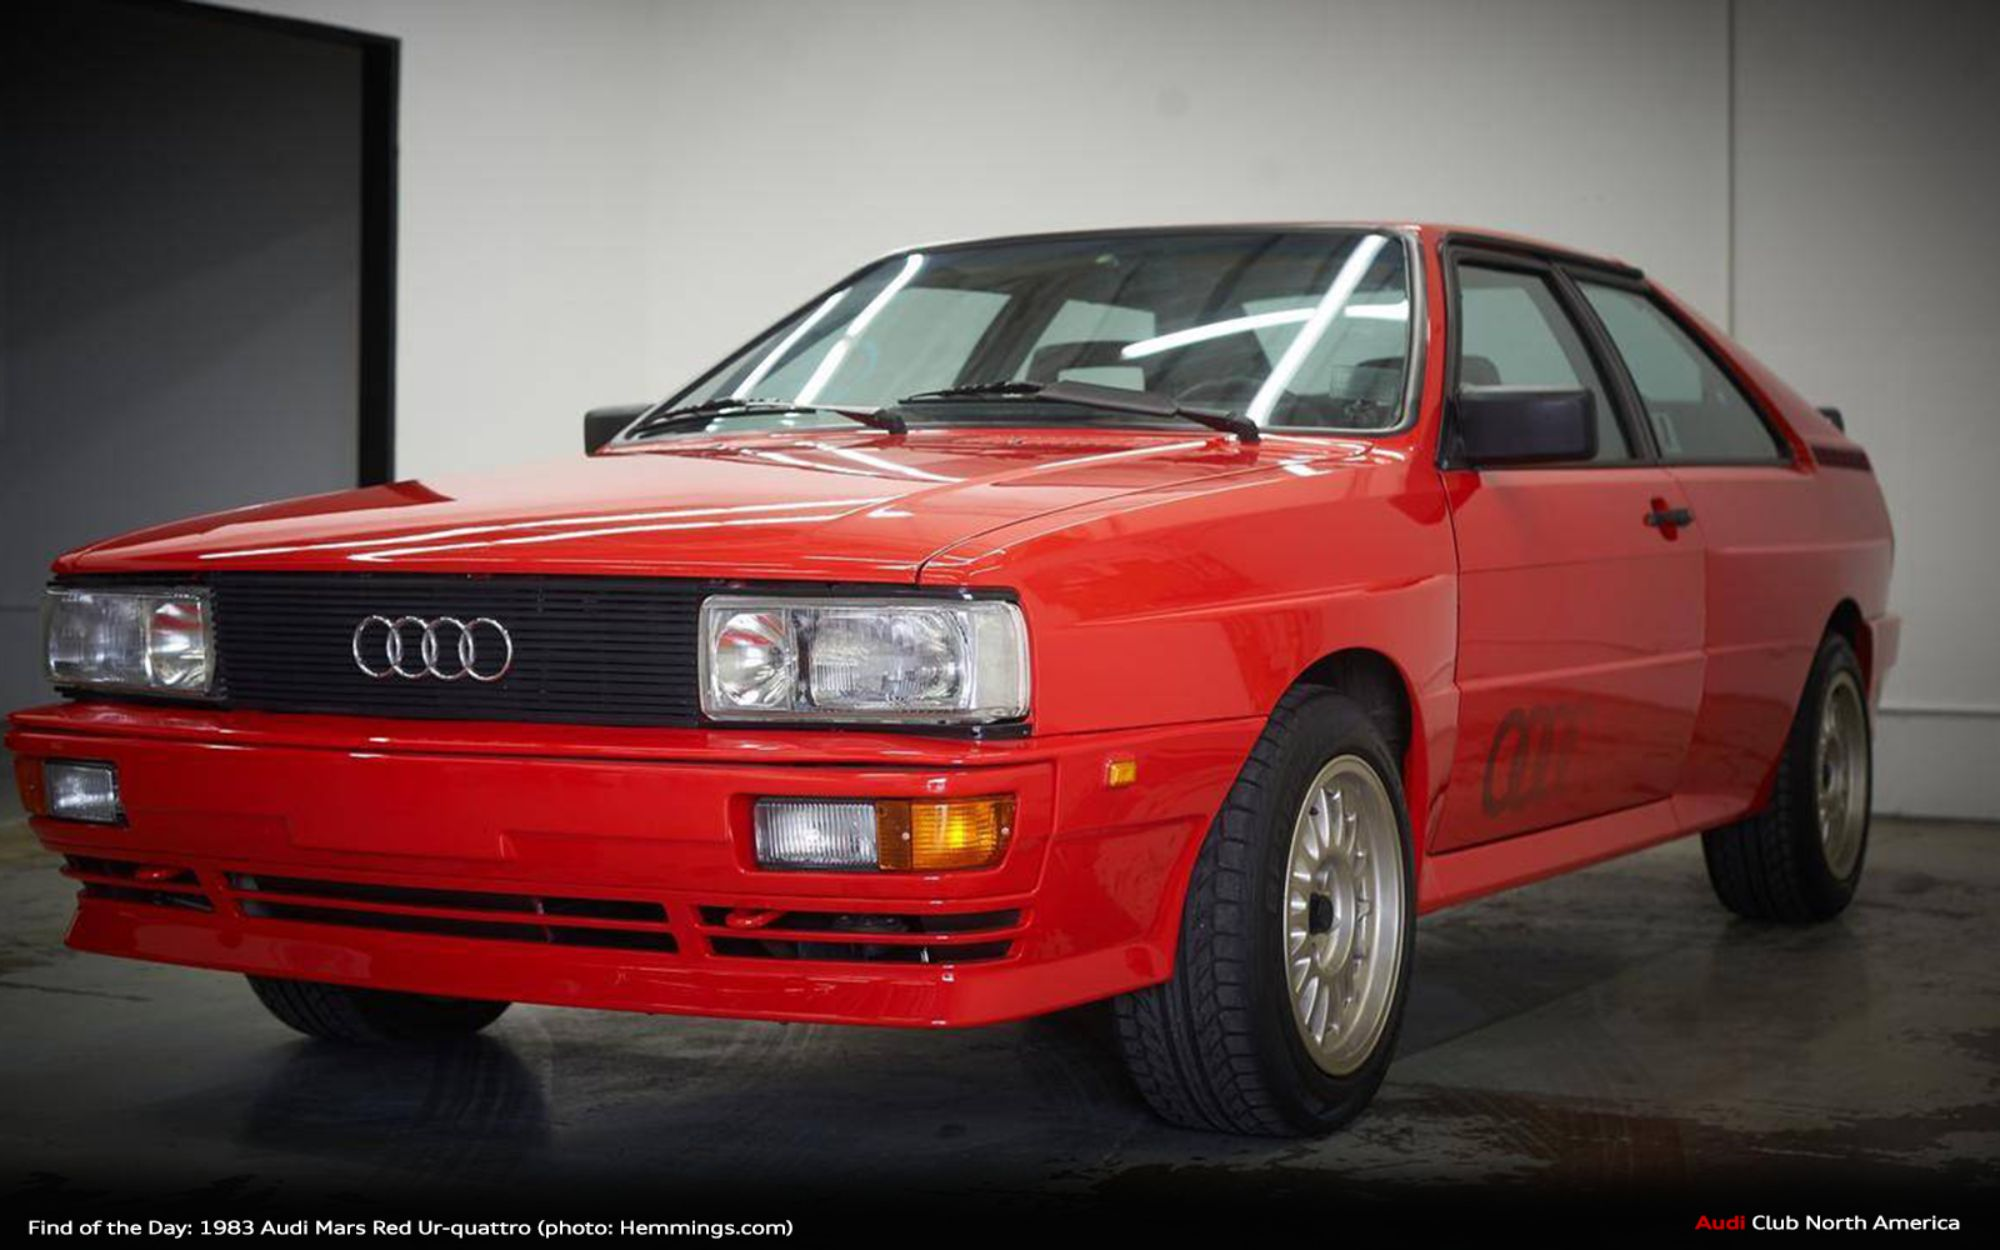 Find of the Day: 1983 Audi Mars Red Ur-quattro